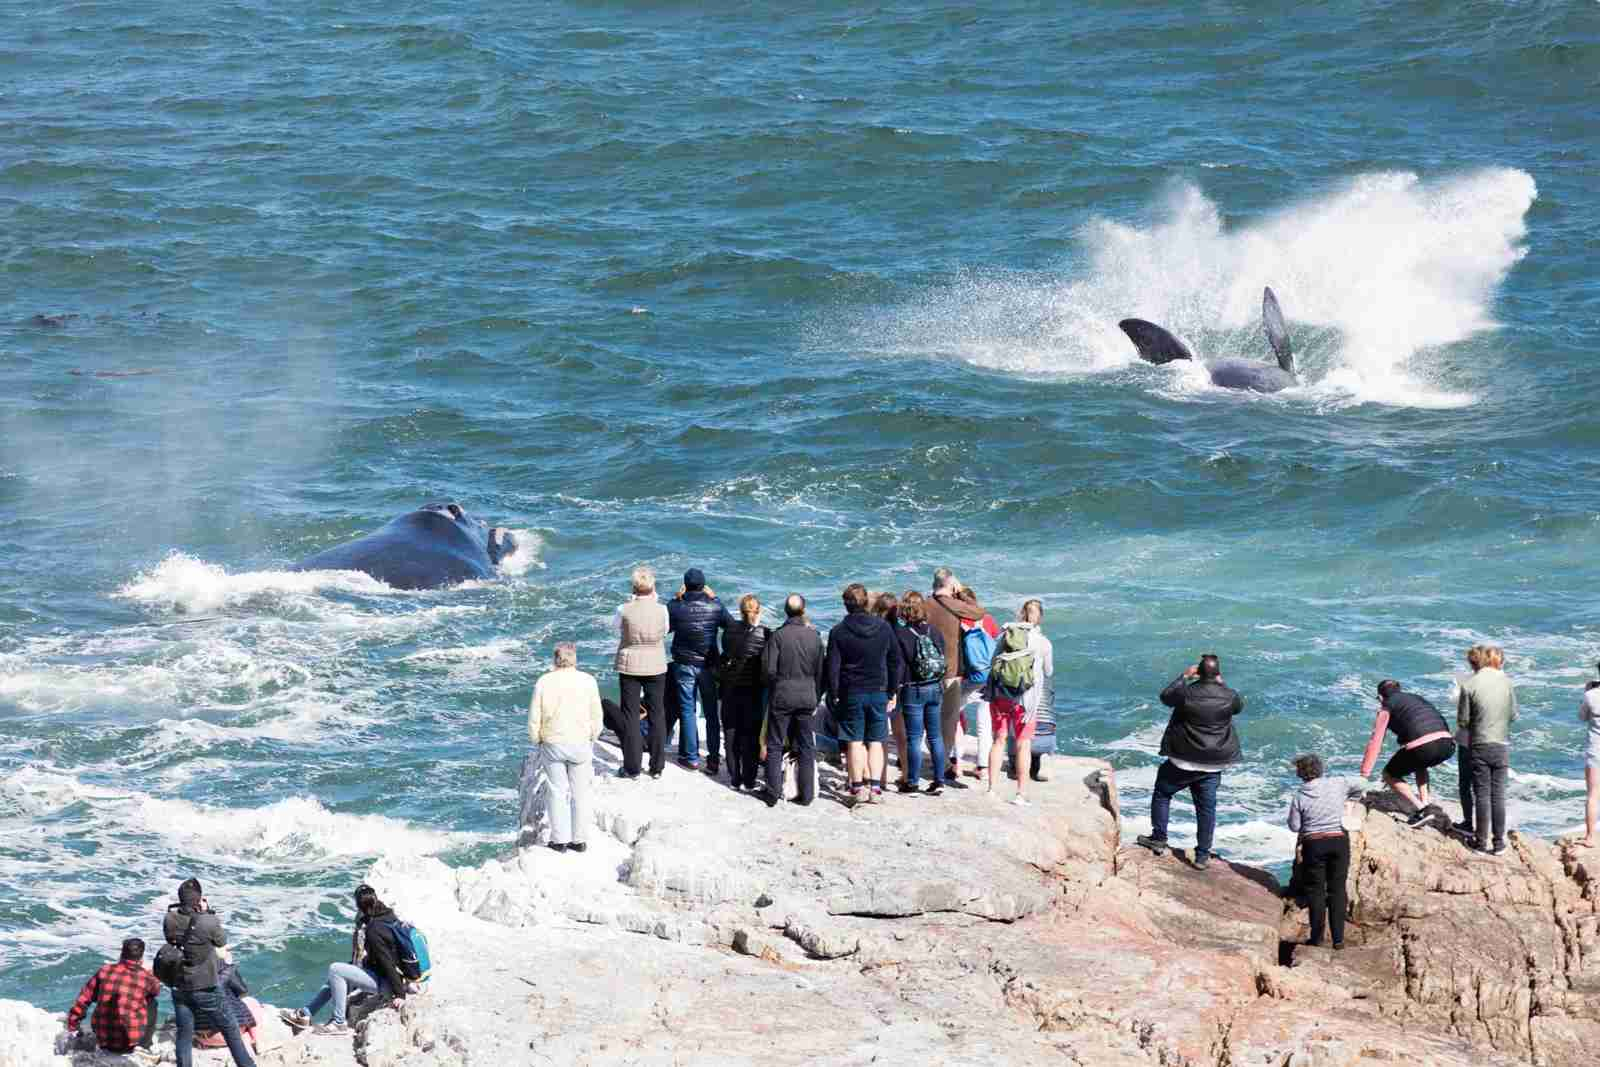 Whales jumping in Hermanus, South Africa. (Photo via Getty Images)